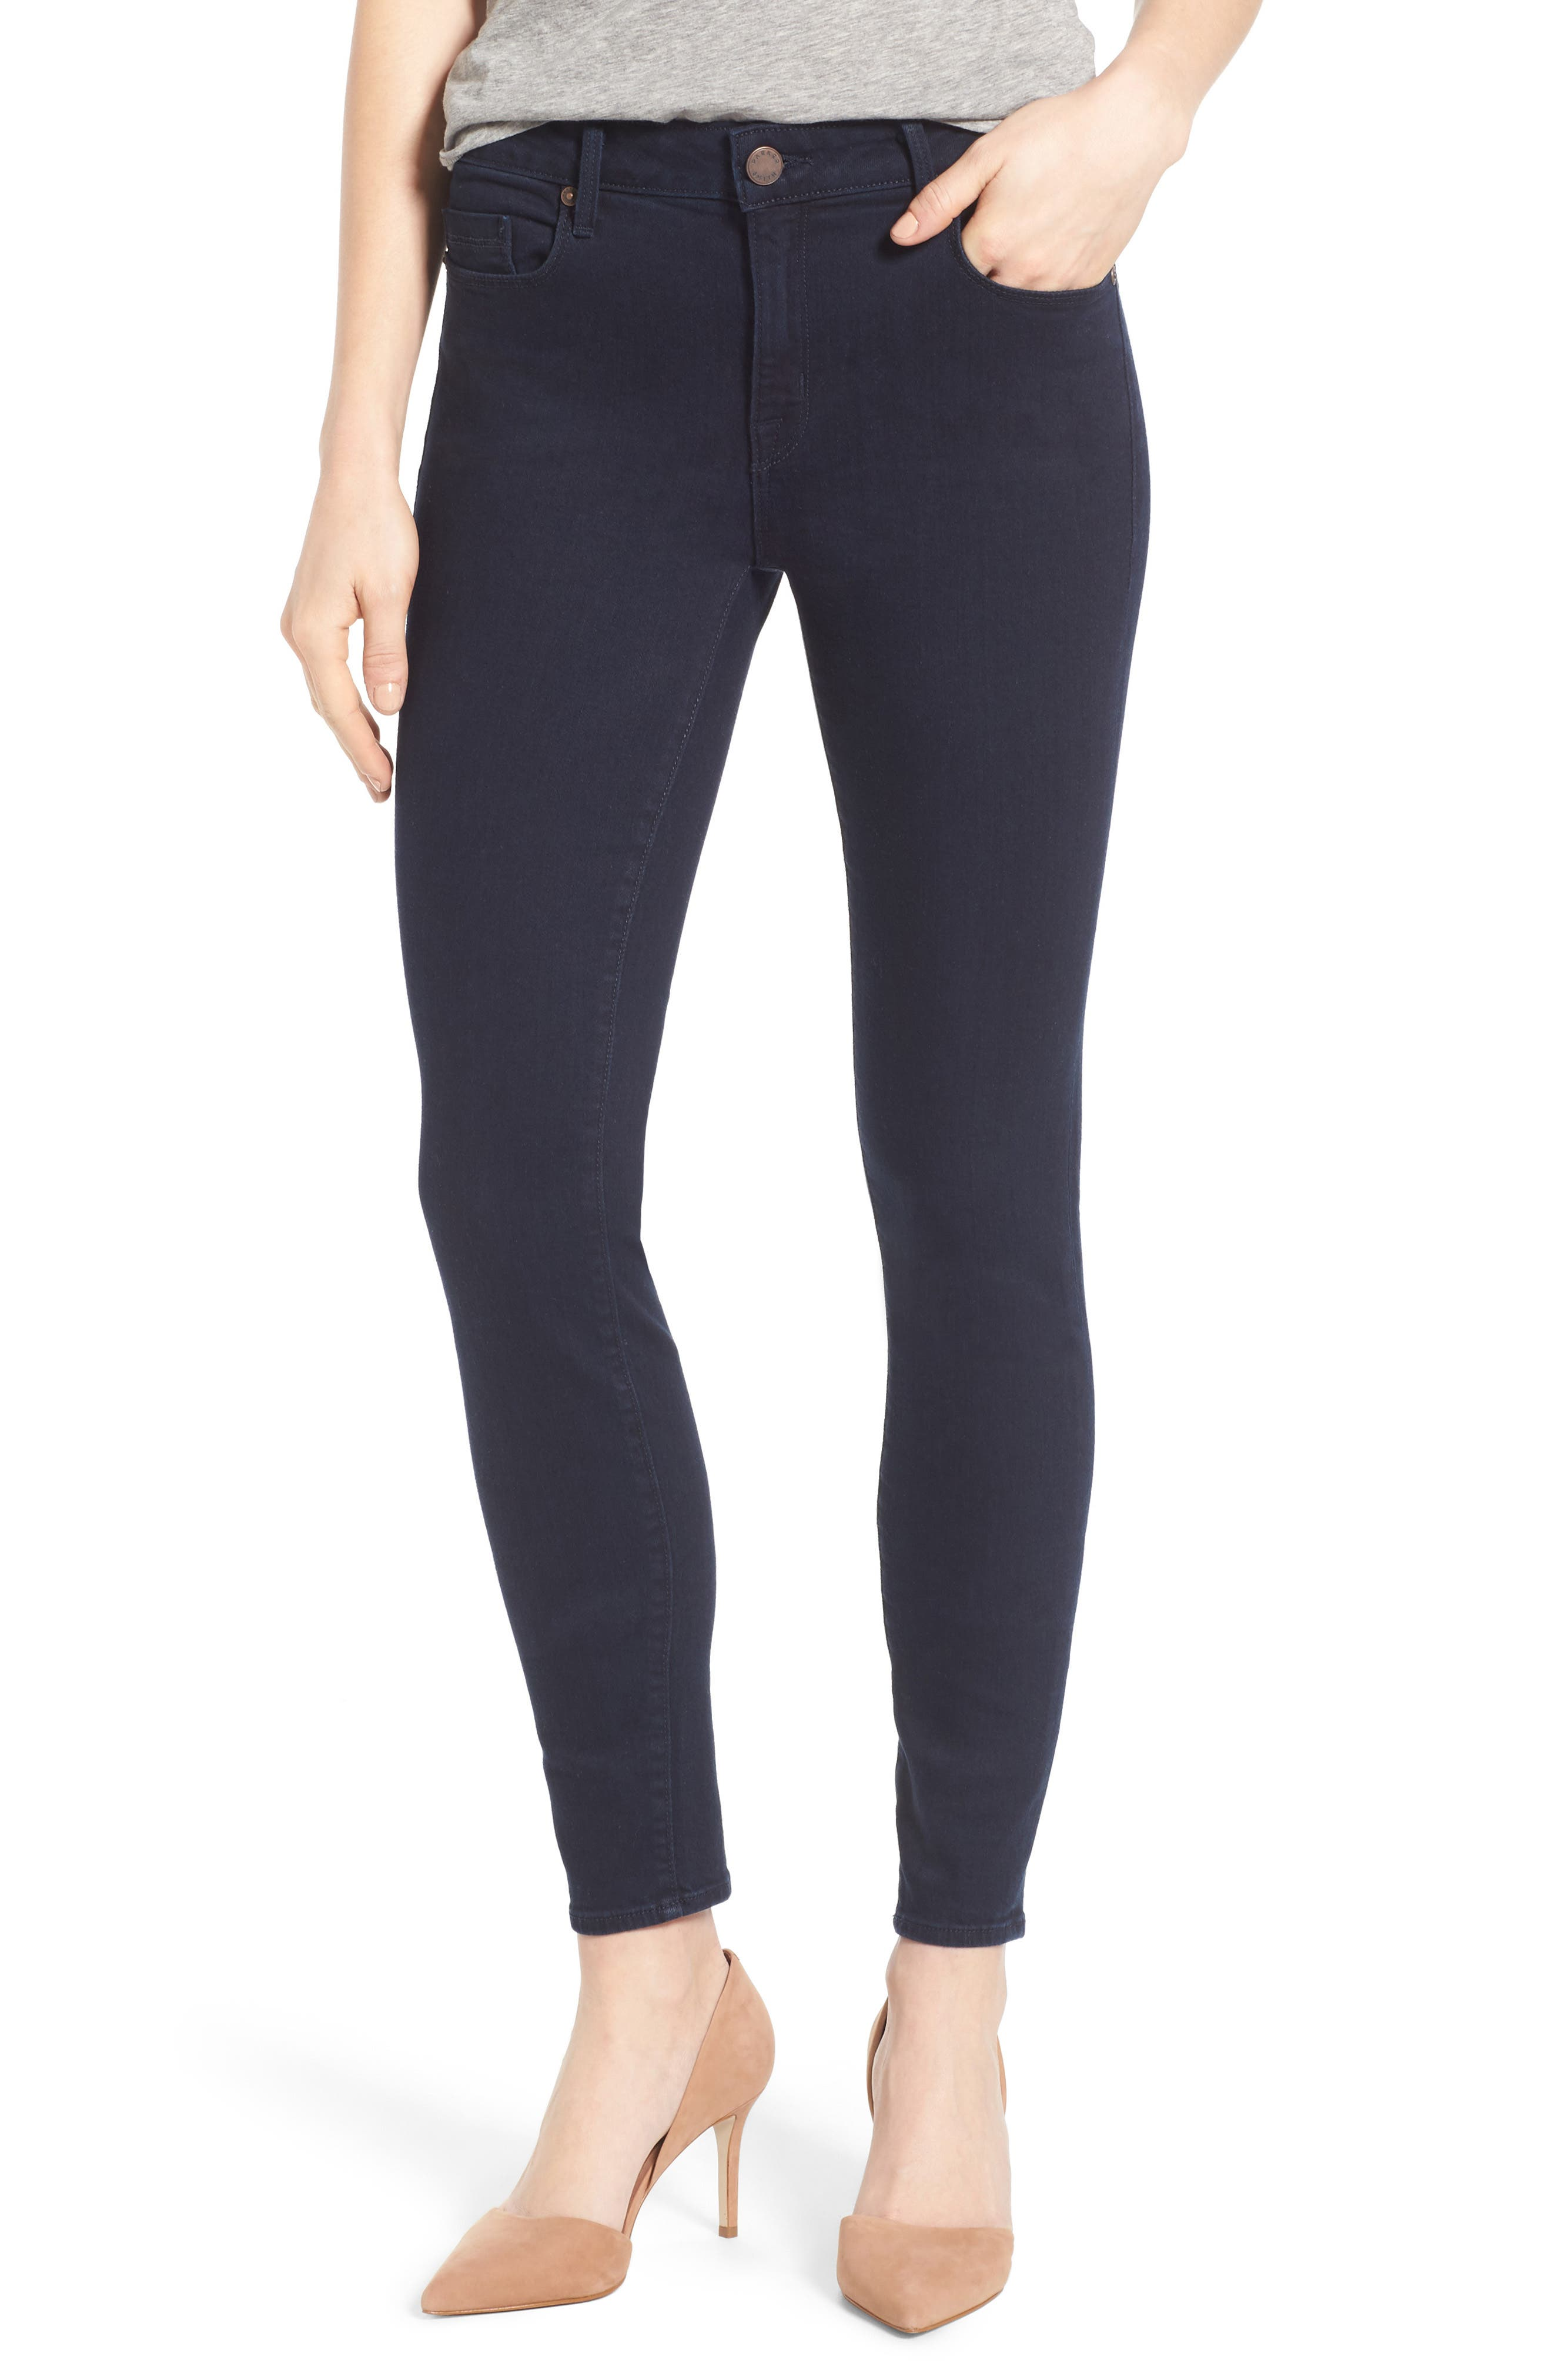 PARKER SMITH,                             Ava Stretch Skinny Jeans,                             Main thumbnail 1, color,                             419